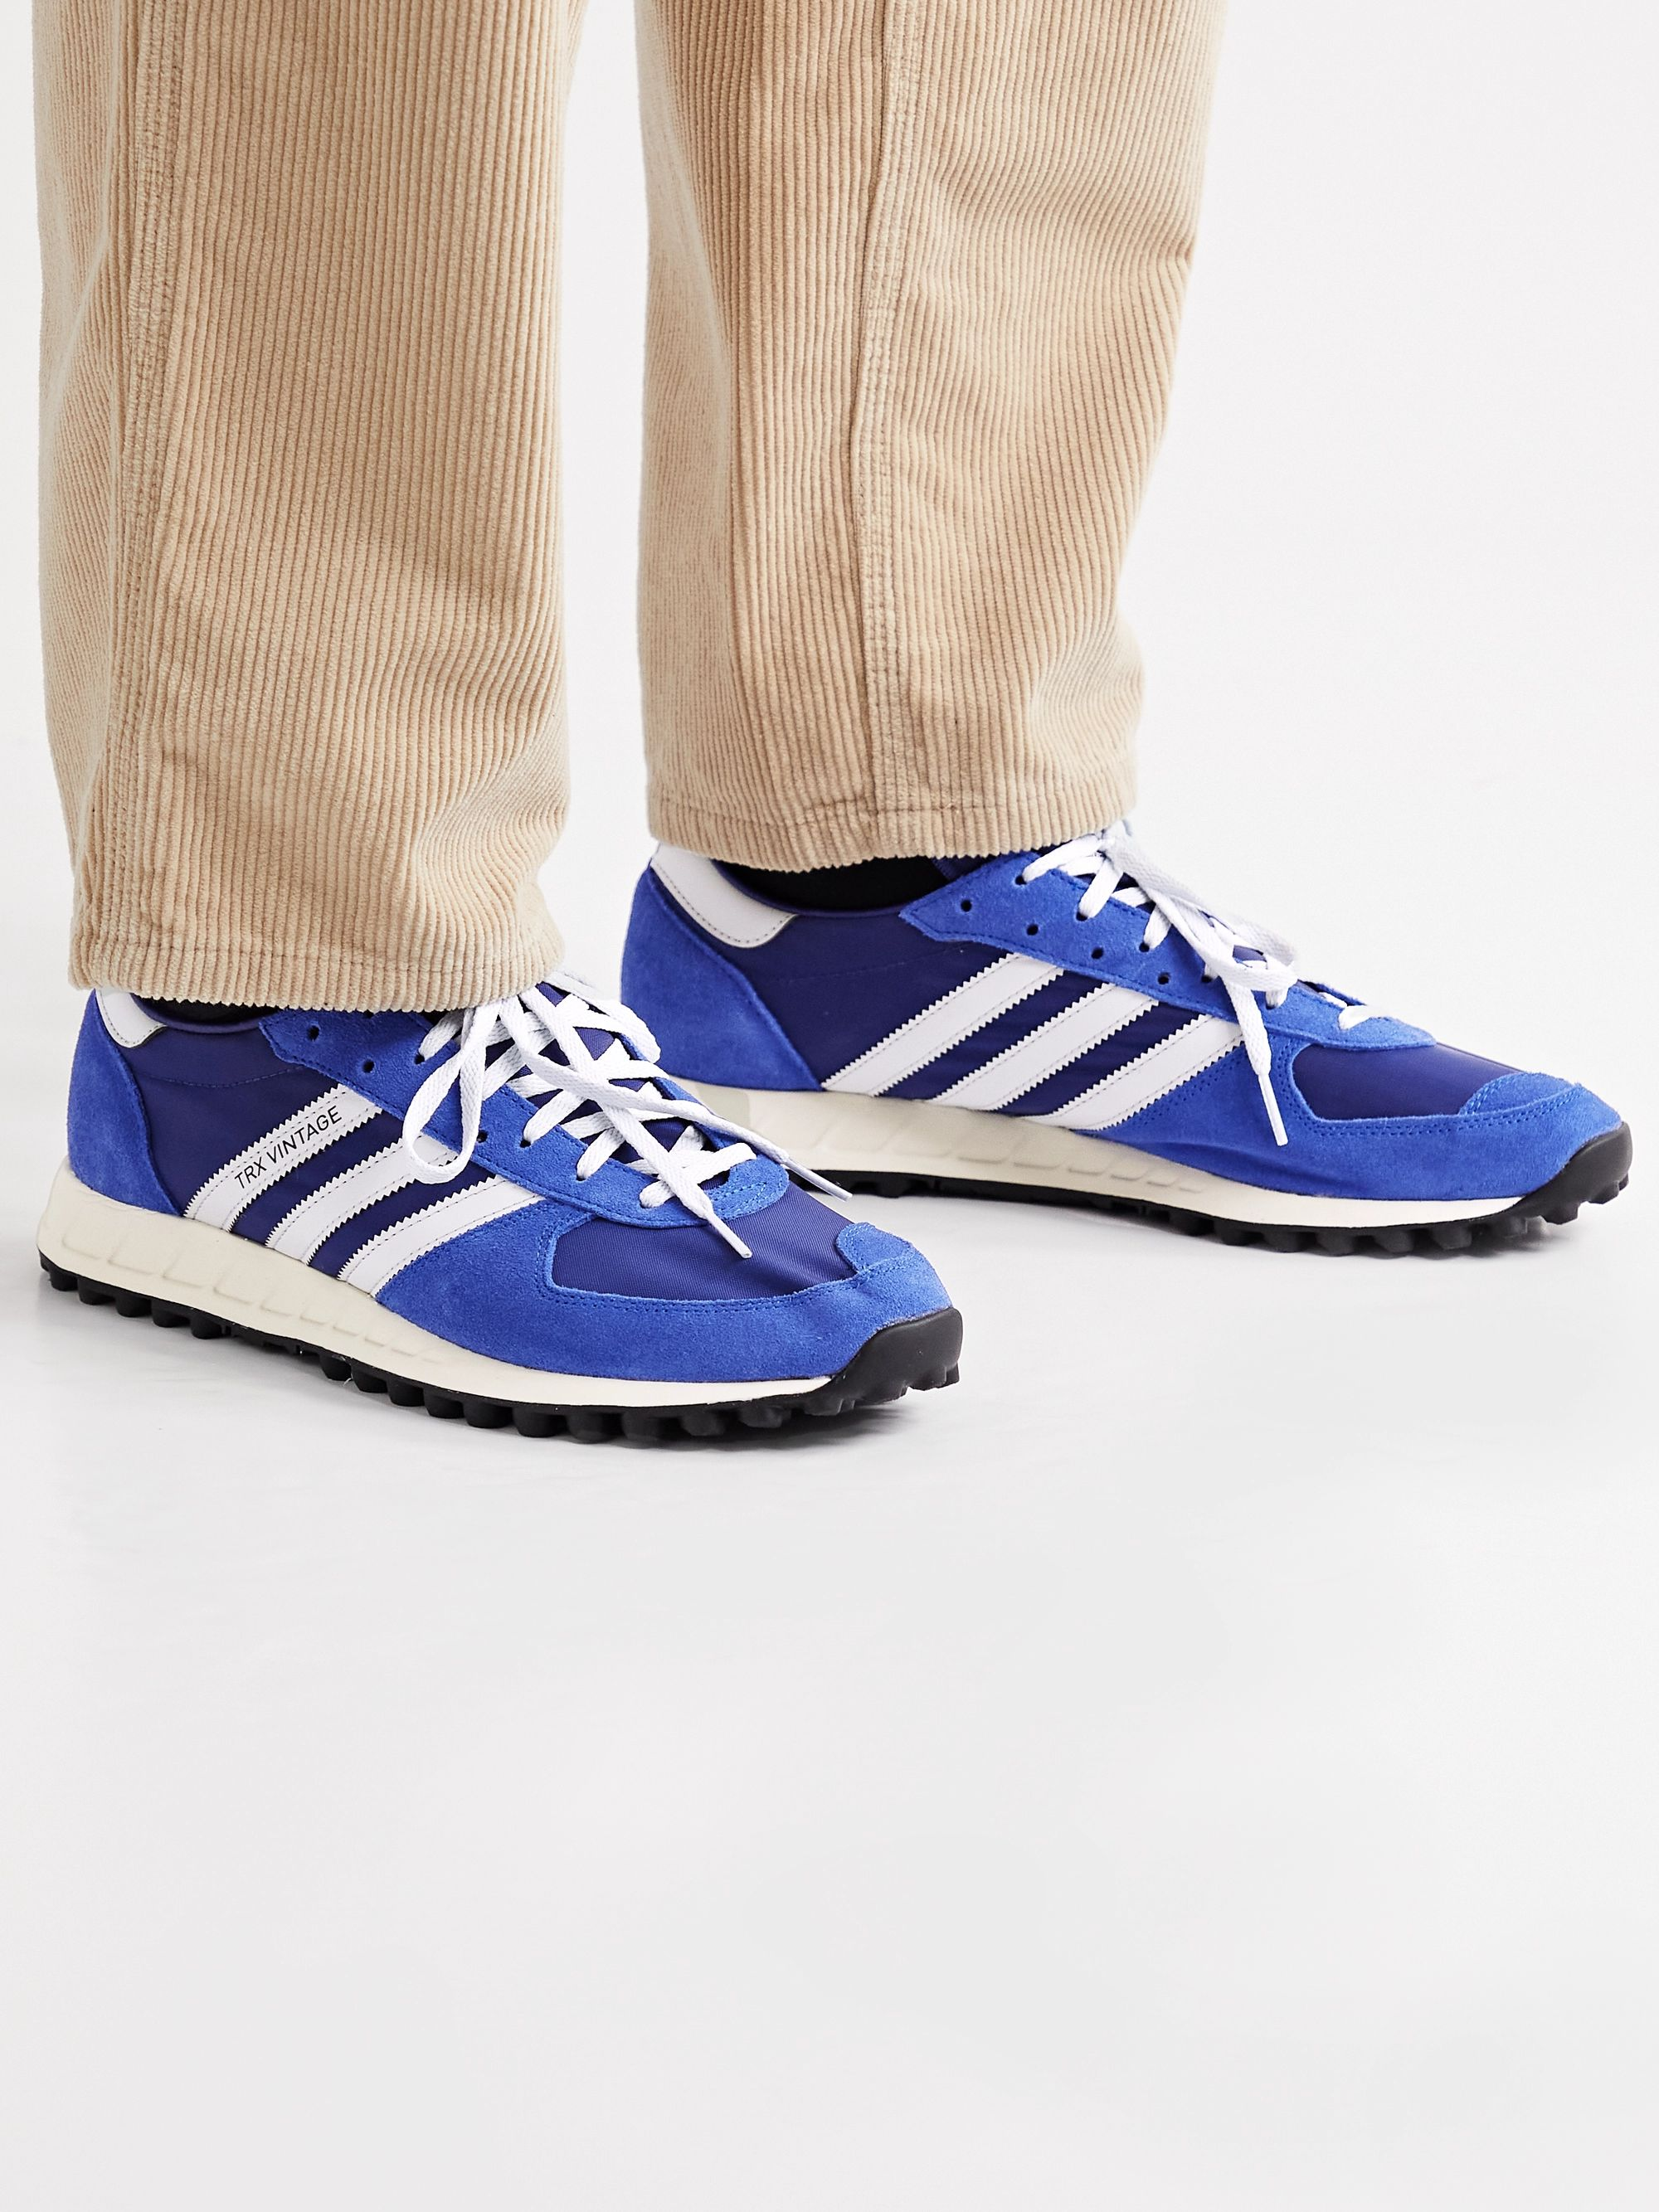 SPEZIAL TRX Vintage Leather-Trimmed Shell and Suede Sneakers